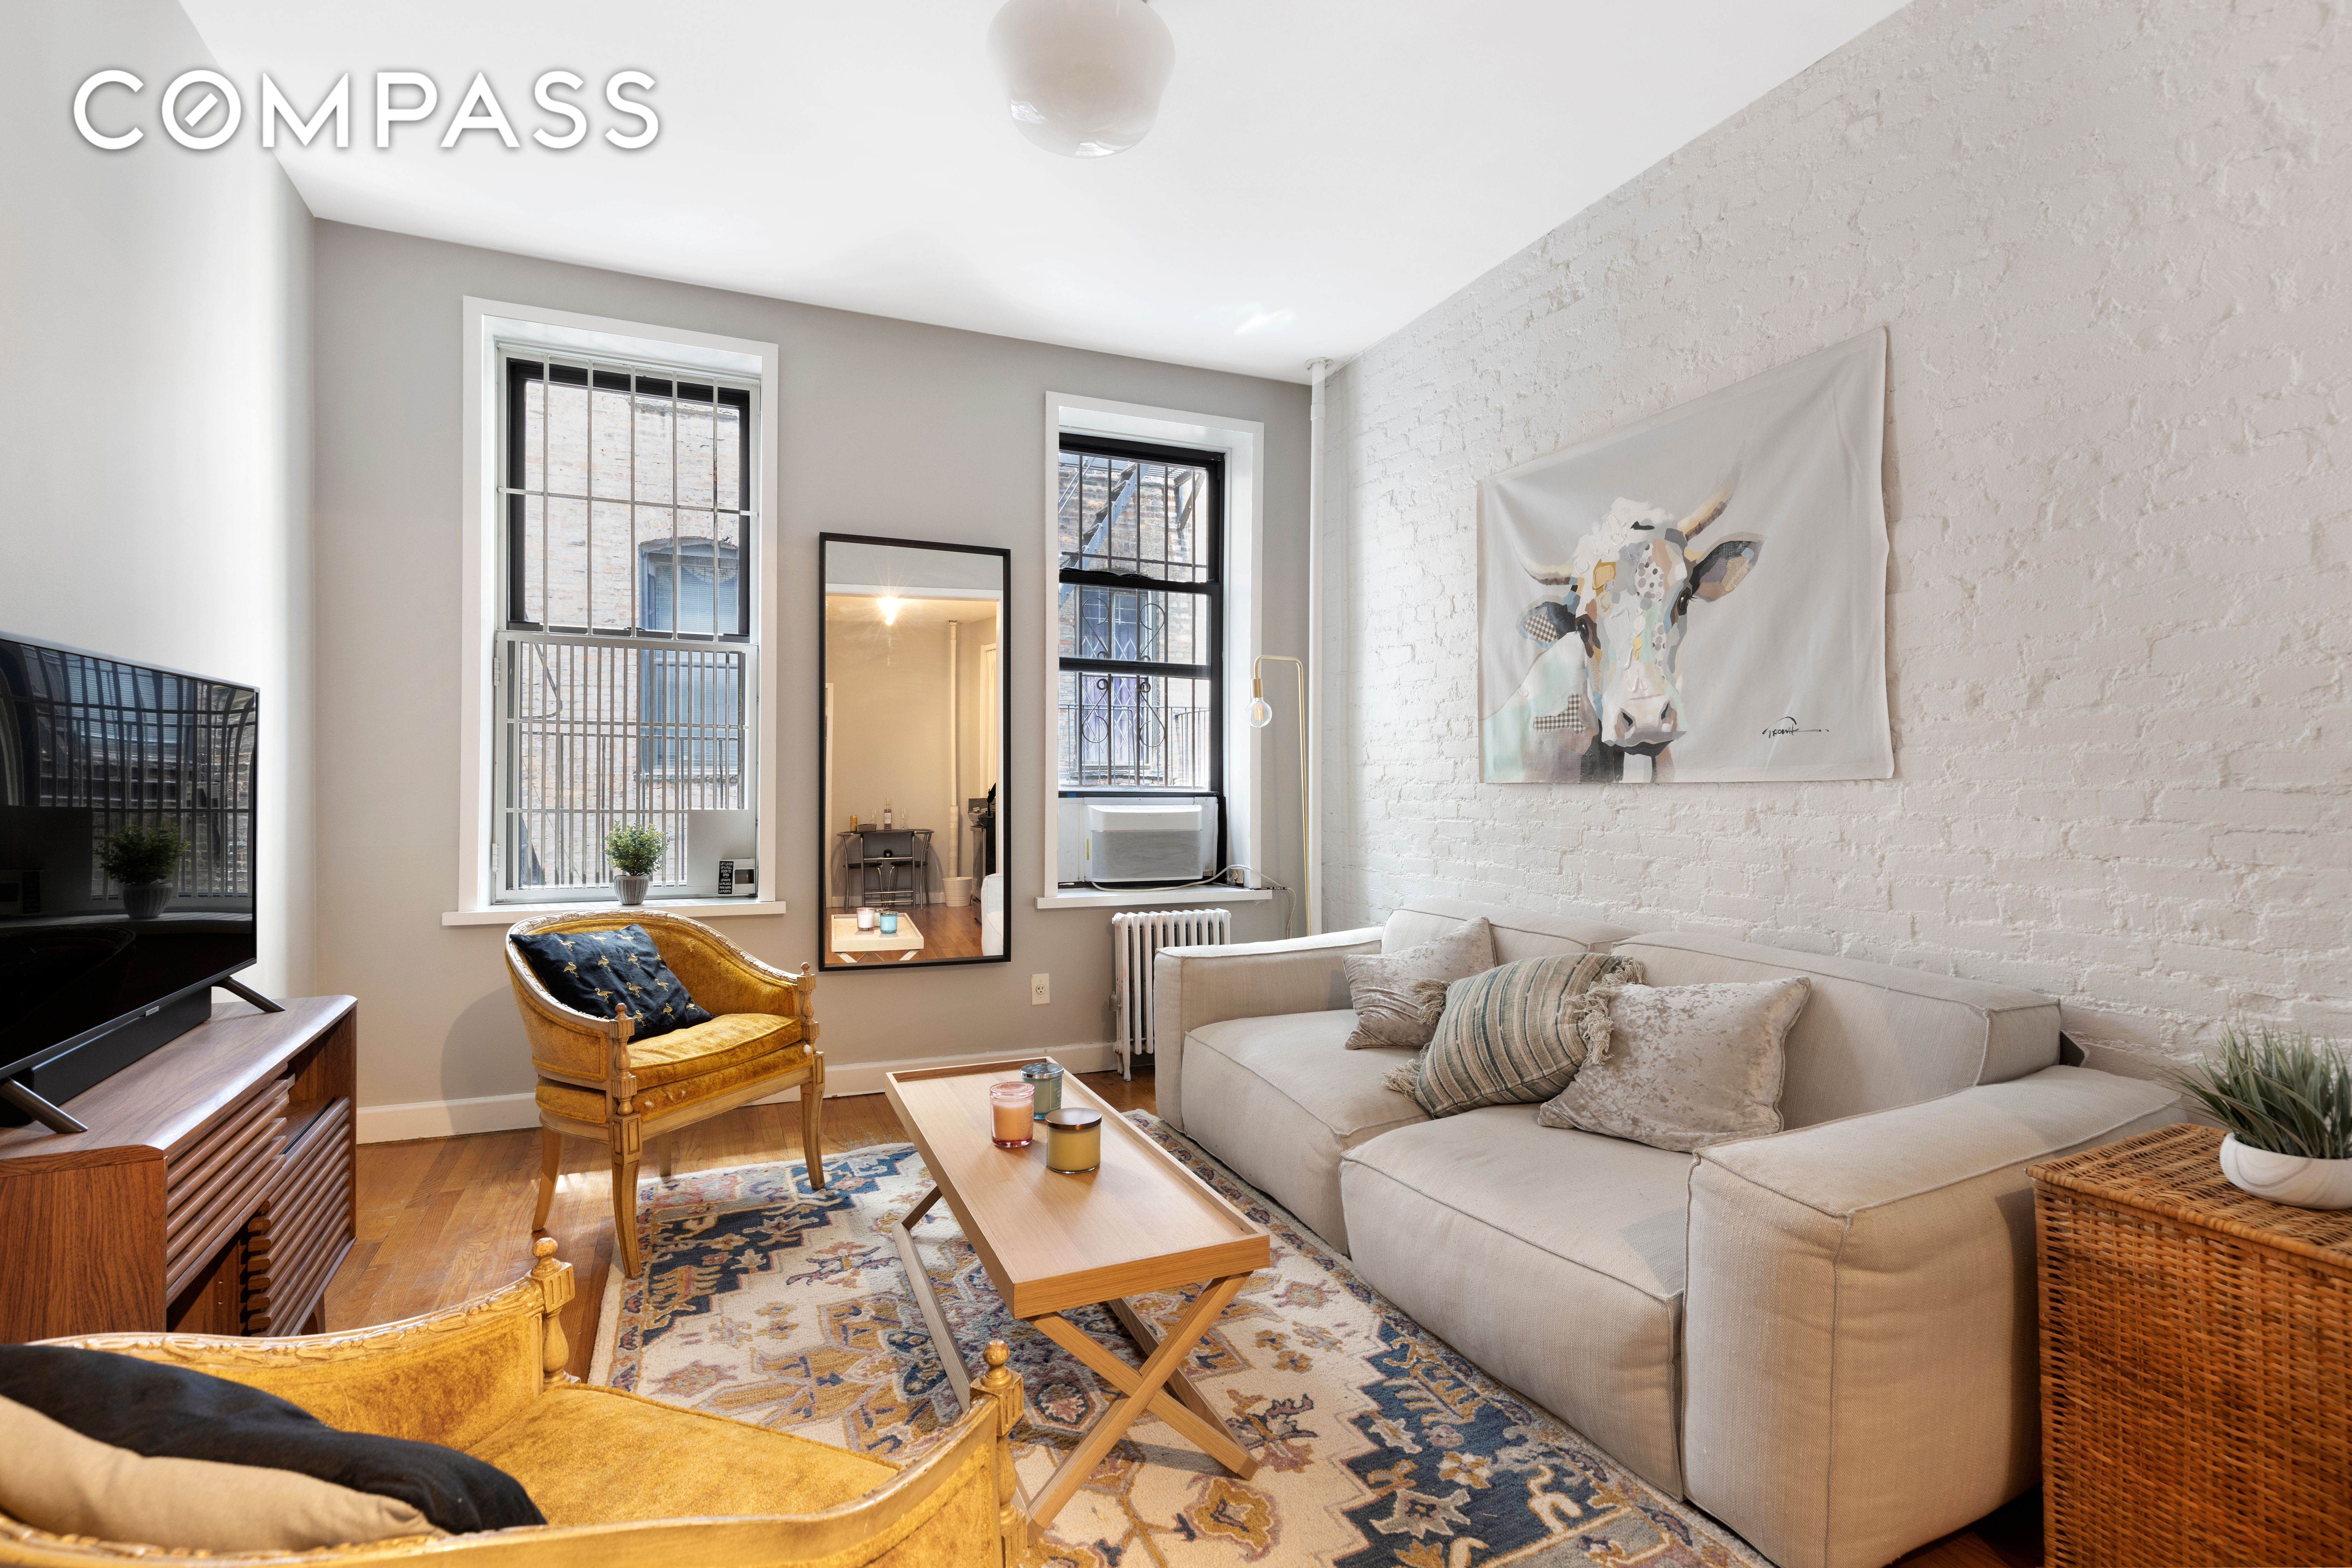 54 E 1st St 2-C, NEW YORK, NY 10003 (MLS #OLRS-86420) :: The Napolitano Team at RE/MAX Edge